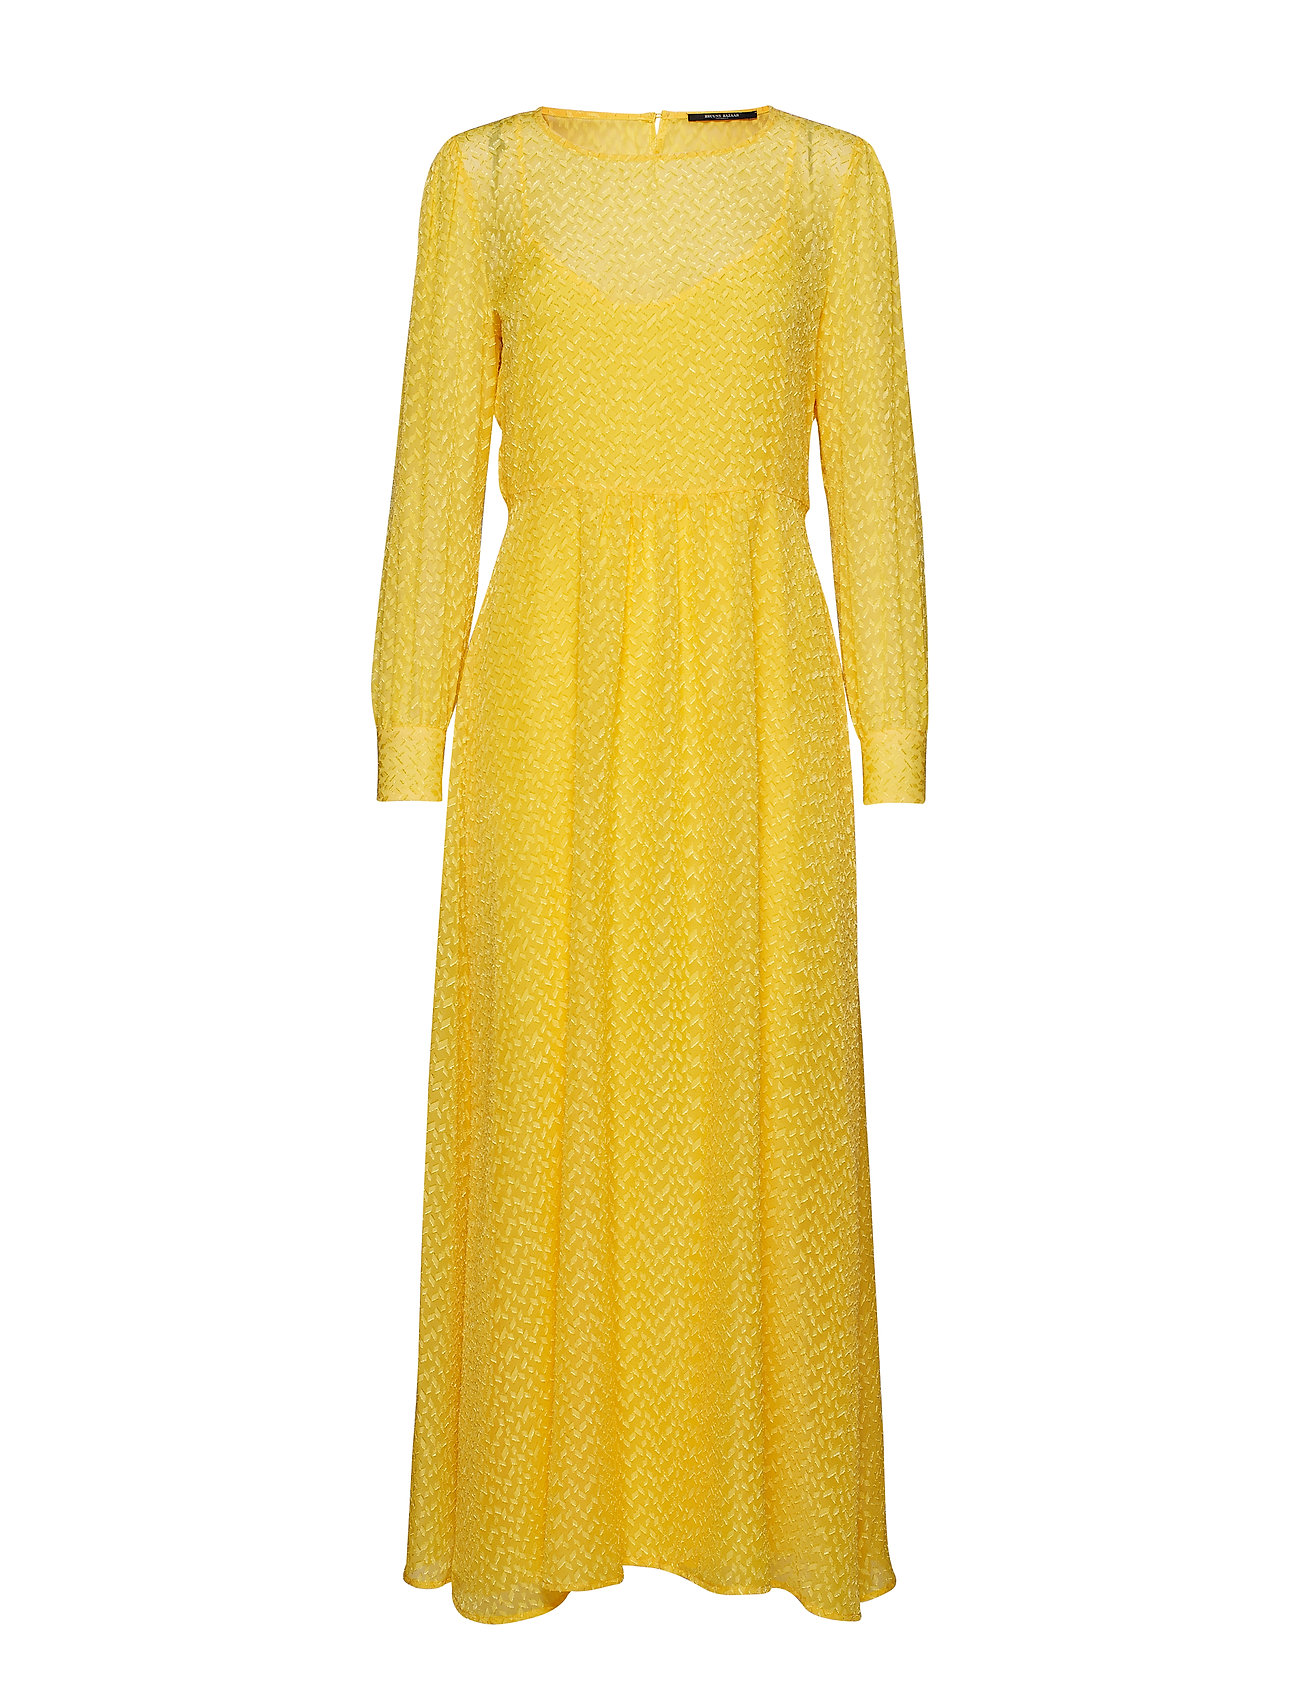 Bruuns Bazaar Zilke Luzia Dress - PEACHY YELLOW